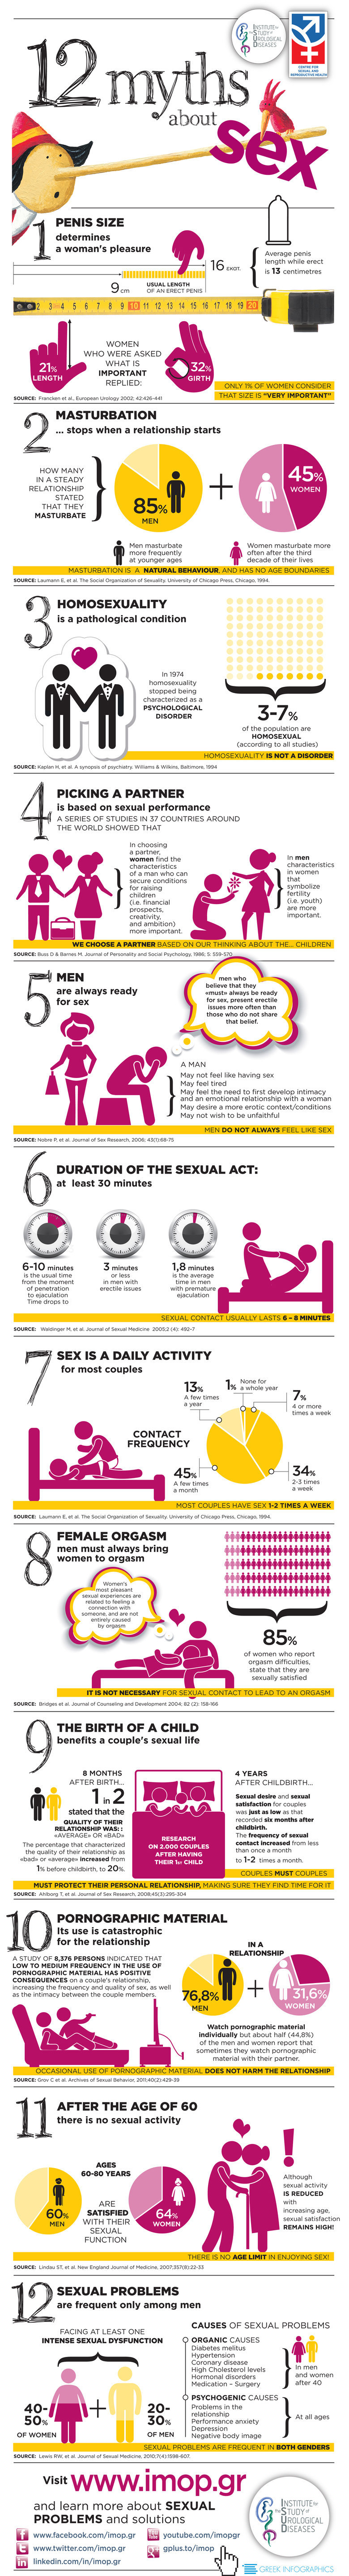 To FJ sex is JUST a myth. .. Old people enjoy their sex so much, that in recent years there has been a huge uptick in Sexually transmitted diseases in senior centers/homes/communities. Not